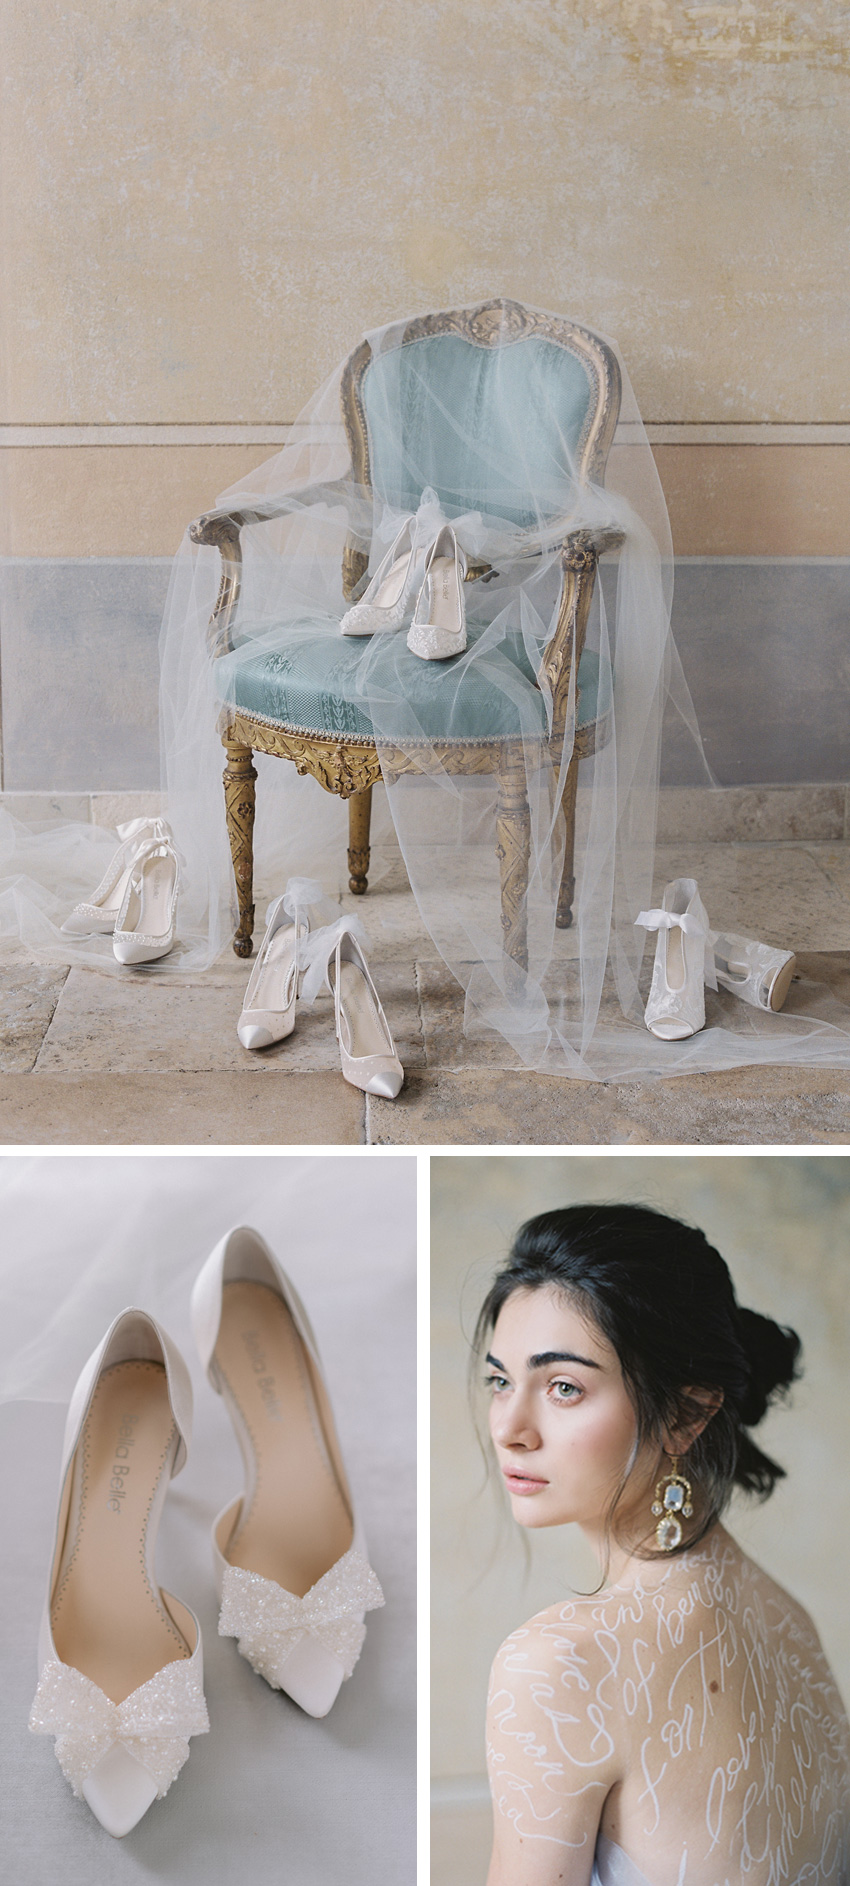 Bella Belle Shoes new collection Poetry of Love for 2020, beautiful Bridal shoes photos at Lake Como, Italy, Perfect Wedding Magazine for Bridal Fashion, Beauty, Bride, Bella Belle Brides, Laura Gordon Photography, Joy Proctor, Zen Film Works, Harold James Paris, Shasta Bell Calligraphy, Veronica Halim Calligraphy, Centorose e un Tulipano, Paolo Sebastian, Rime Arodaky, Nicole and Felicia, Andrea Sedicim Costarellos, Xtabay Vintage, Claire La Faye, Bonggiwe Proctor, Twigs and Honey, Villa Sala Cabiati, Villa Balbiano, Locust Collection